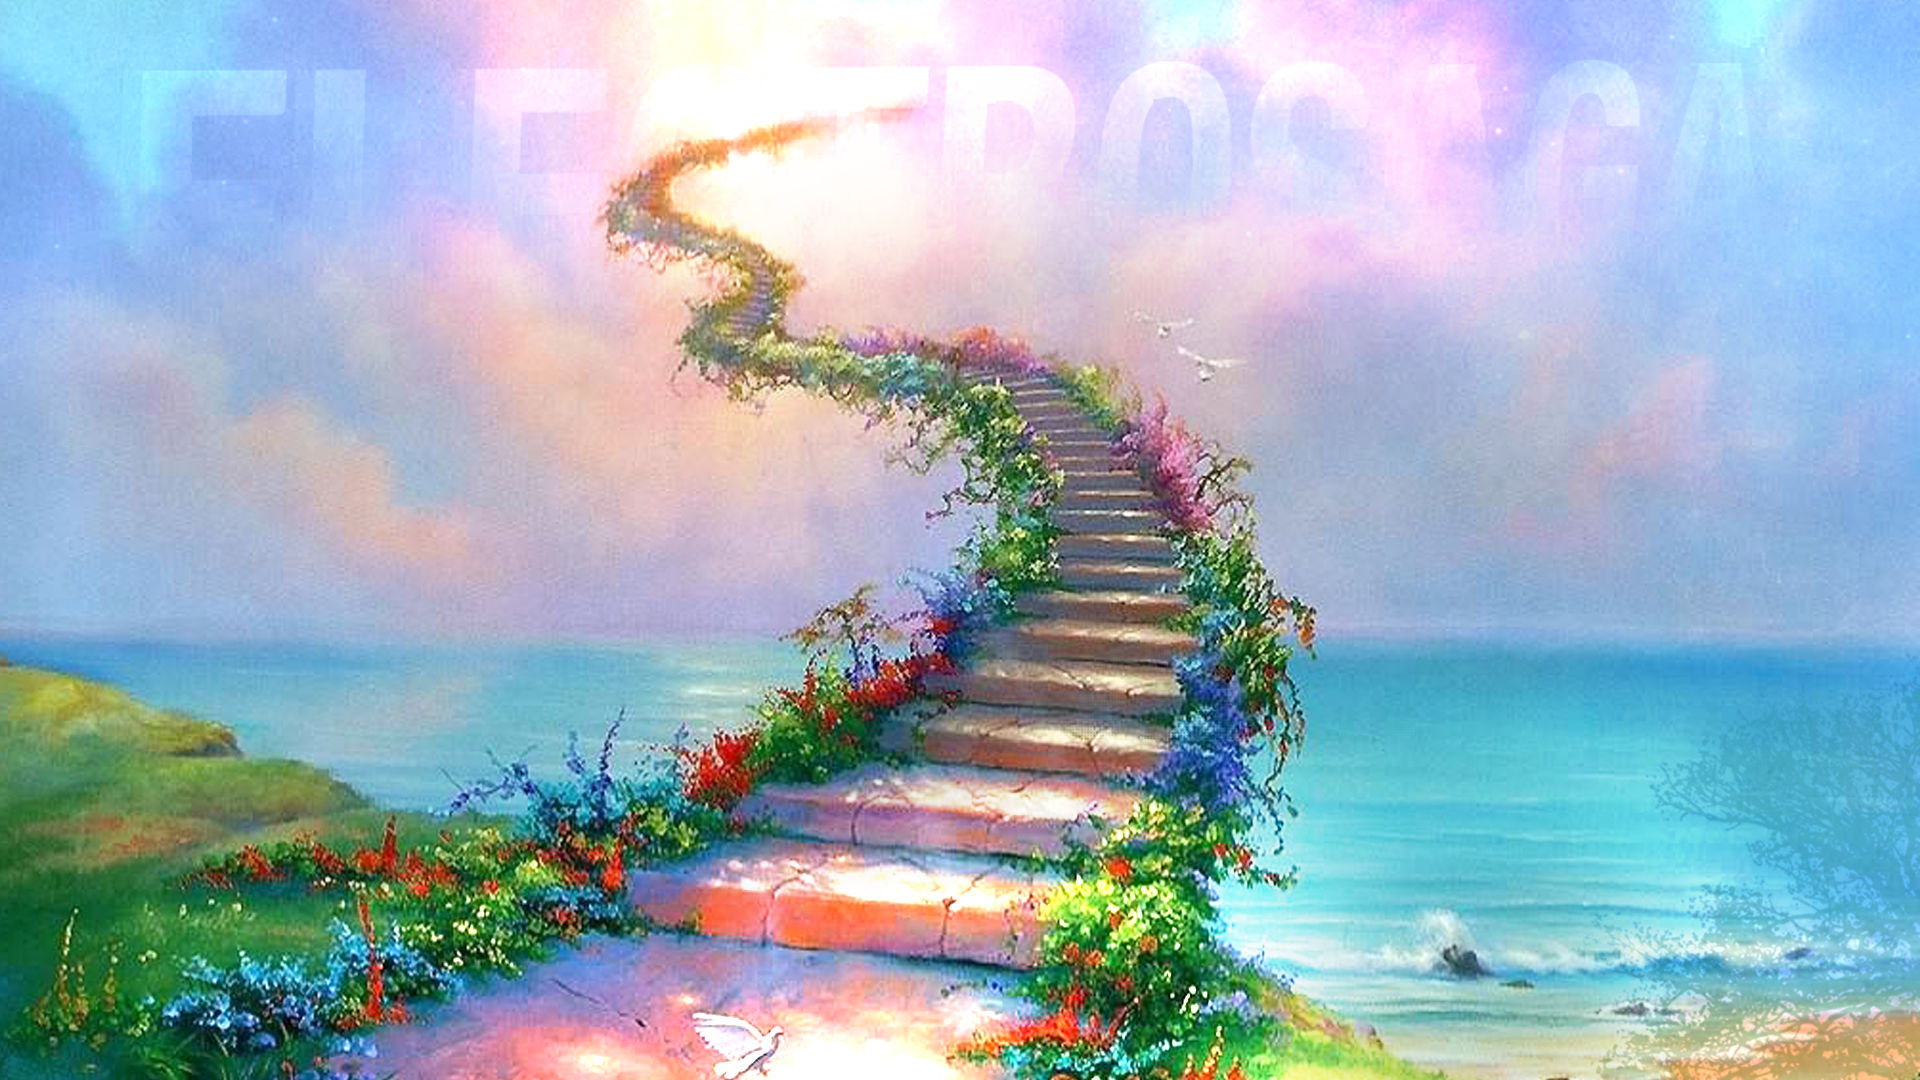 stairway to heaven background - photo #9